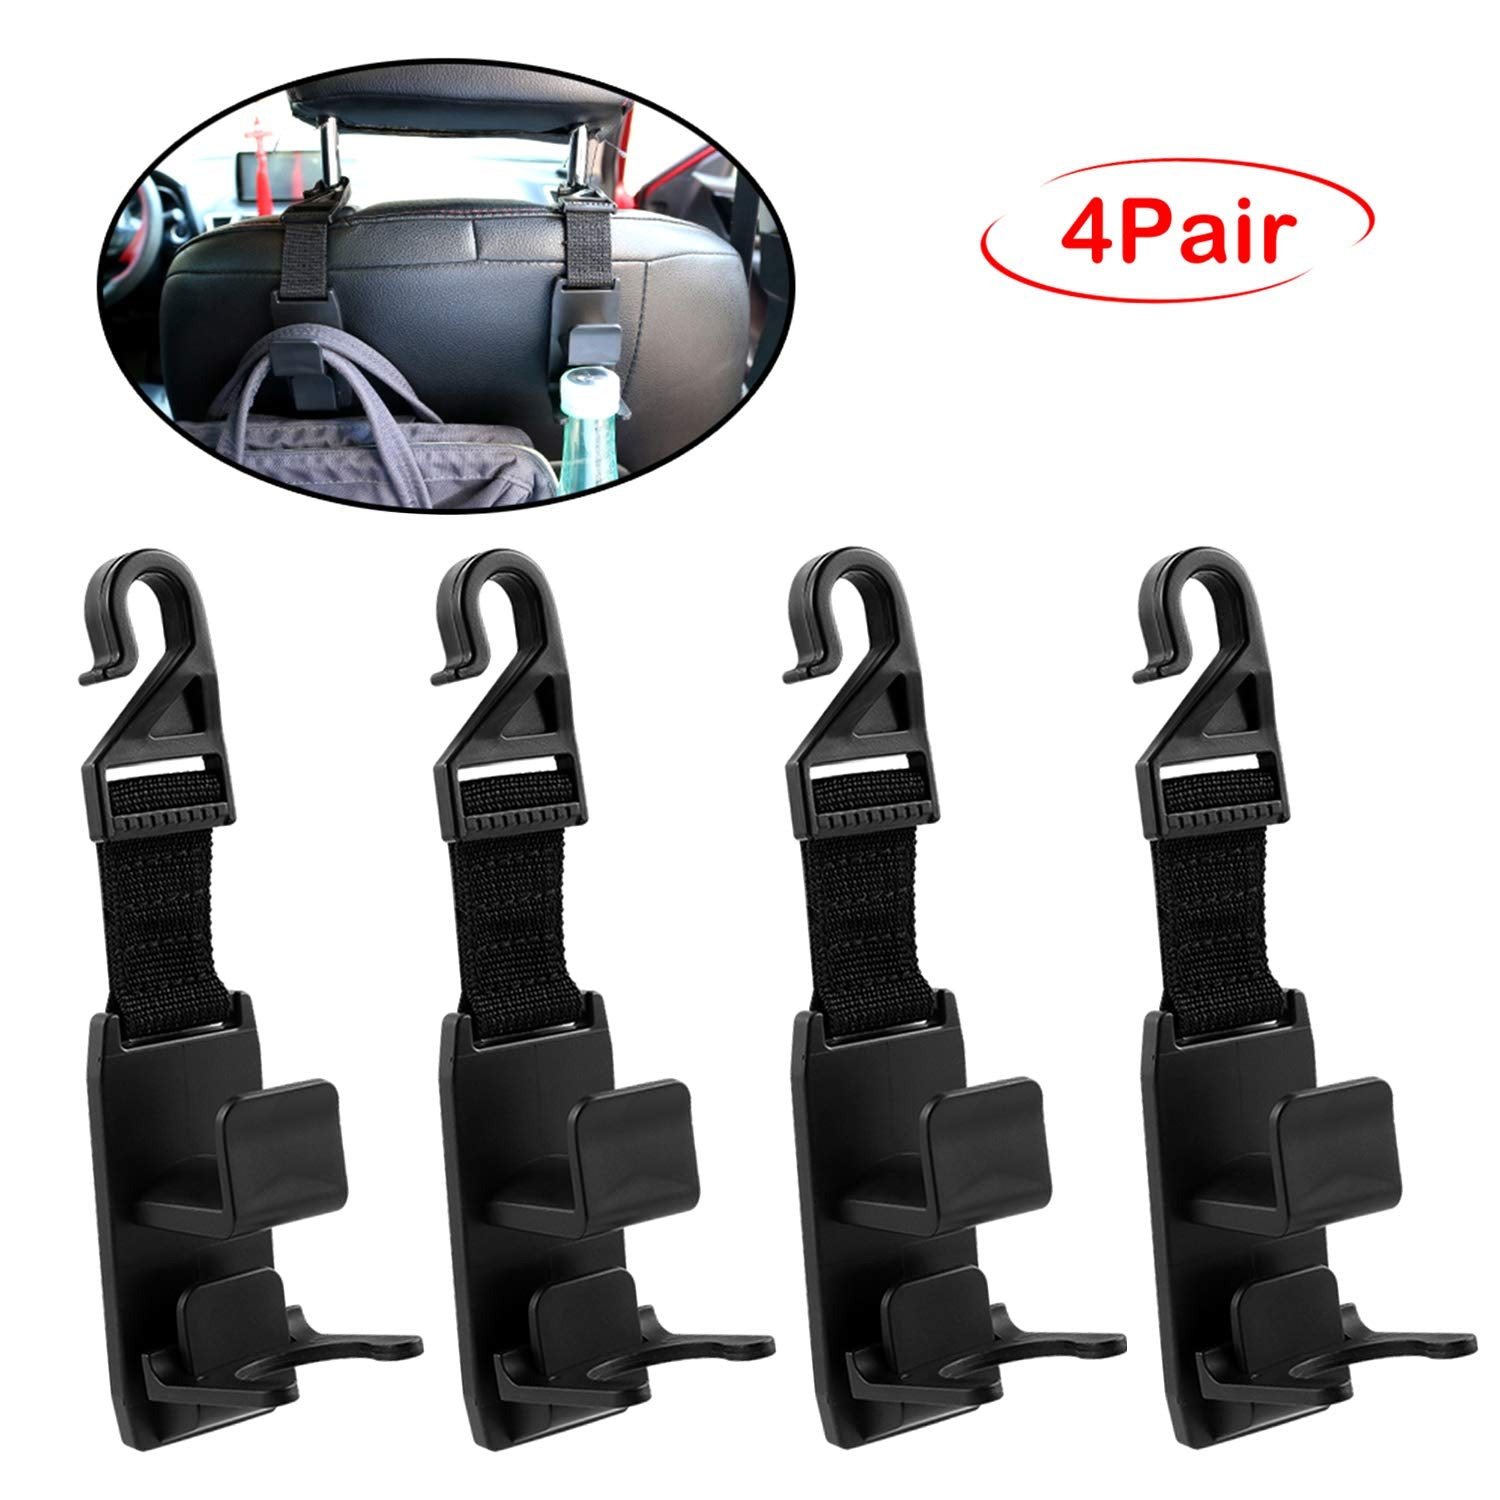 Headrest Hooks for Car, Bestwin Headrest Hanger for Purse, Handbag, Grocery Bags, Coat and Bottle, Universal Vehicle Headrest Hook Holder